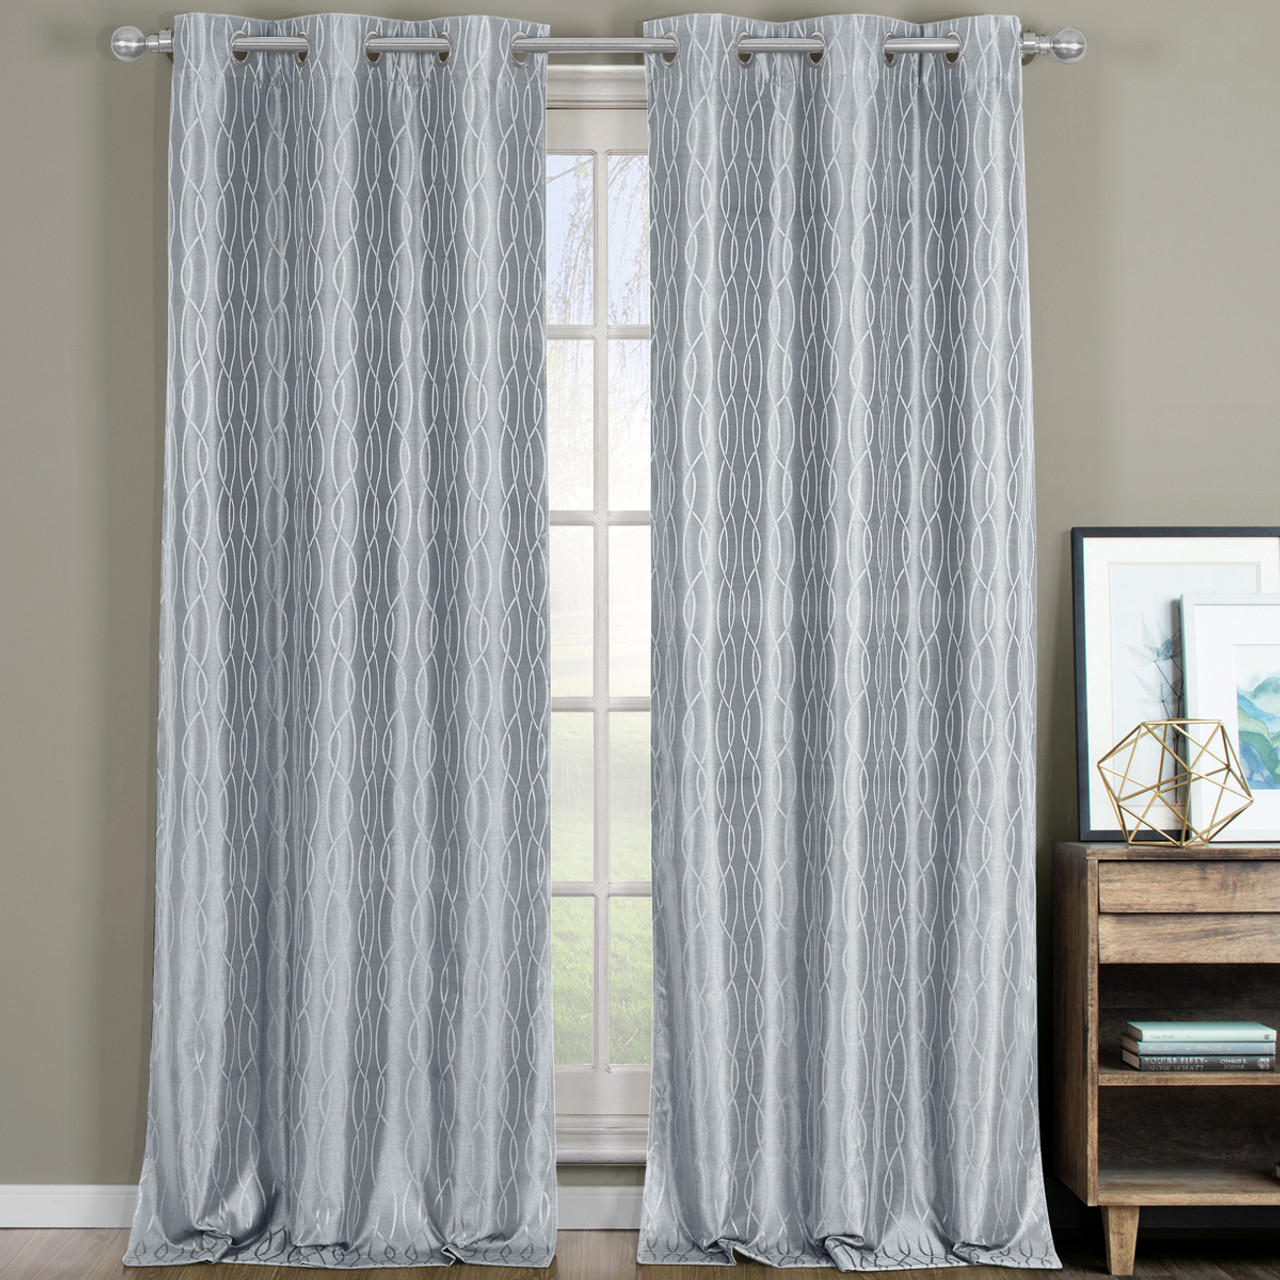 grommet boch drapes curtain blackout marigold curtains gr